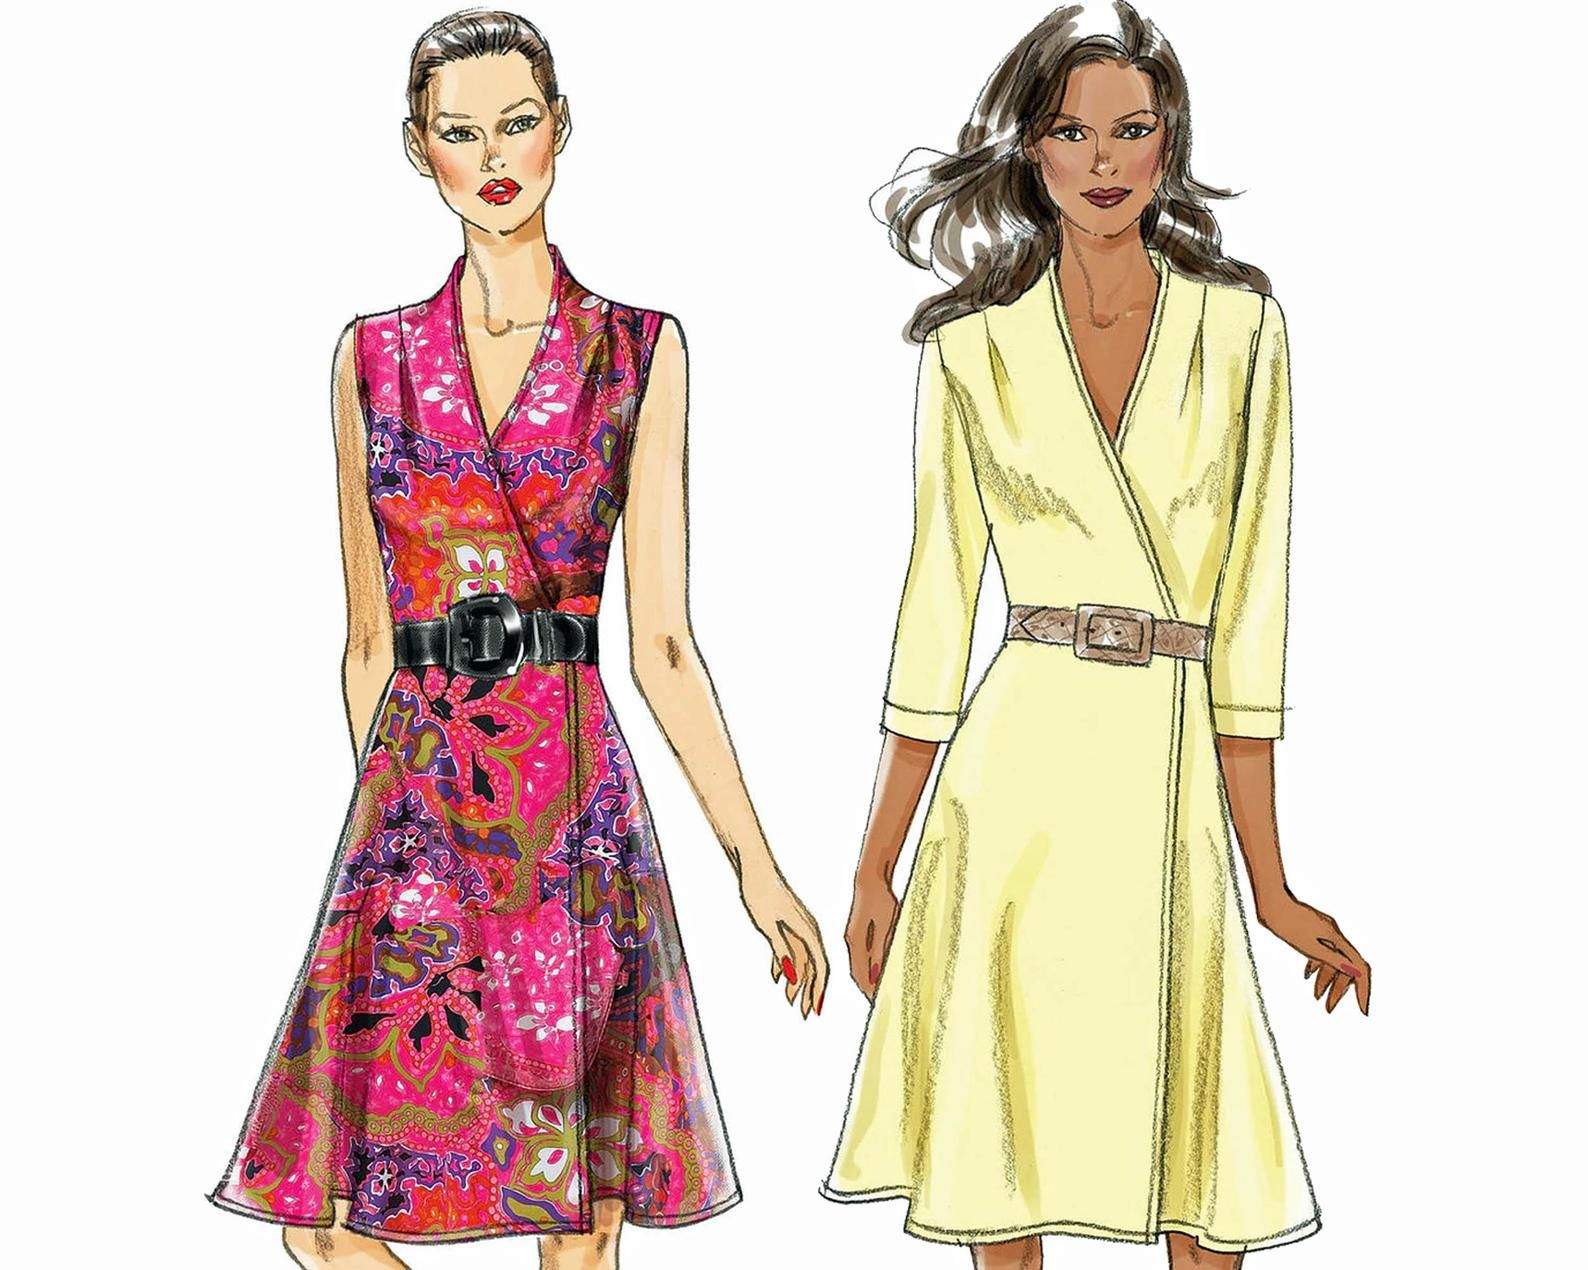 Vogue Sewing Pattern For Wrap Dress In Plus Size Very Easy Etsy Vogue Sewing Patterns Dresses Vogue Dress [ 1270 x 1588 Pixel ]